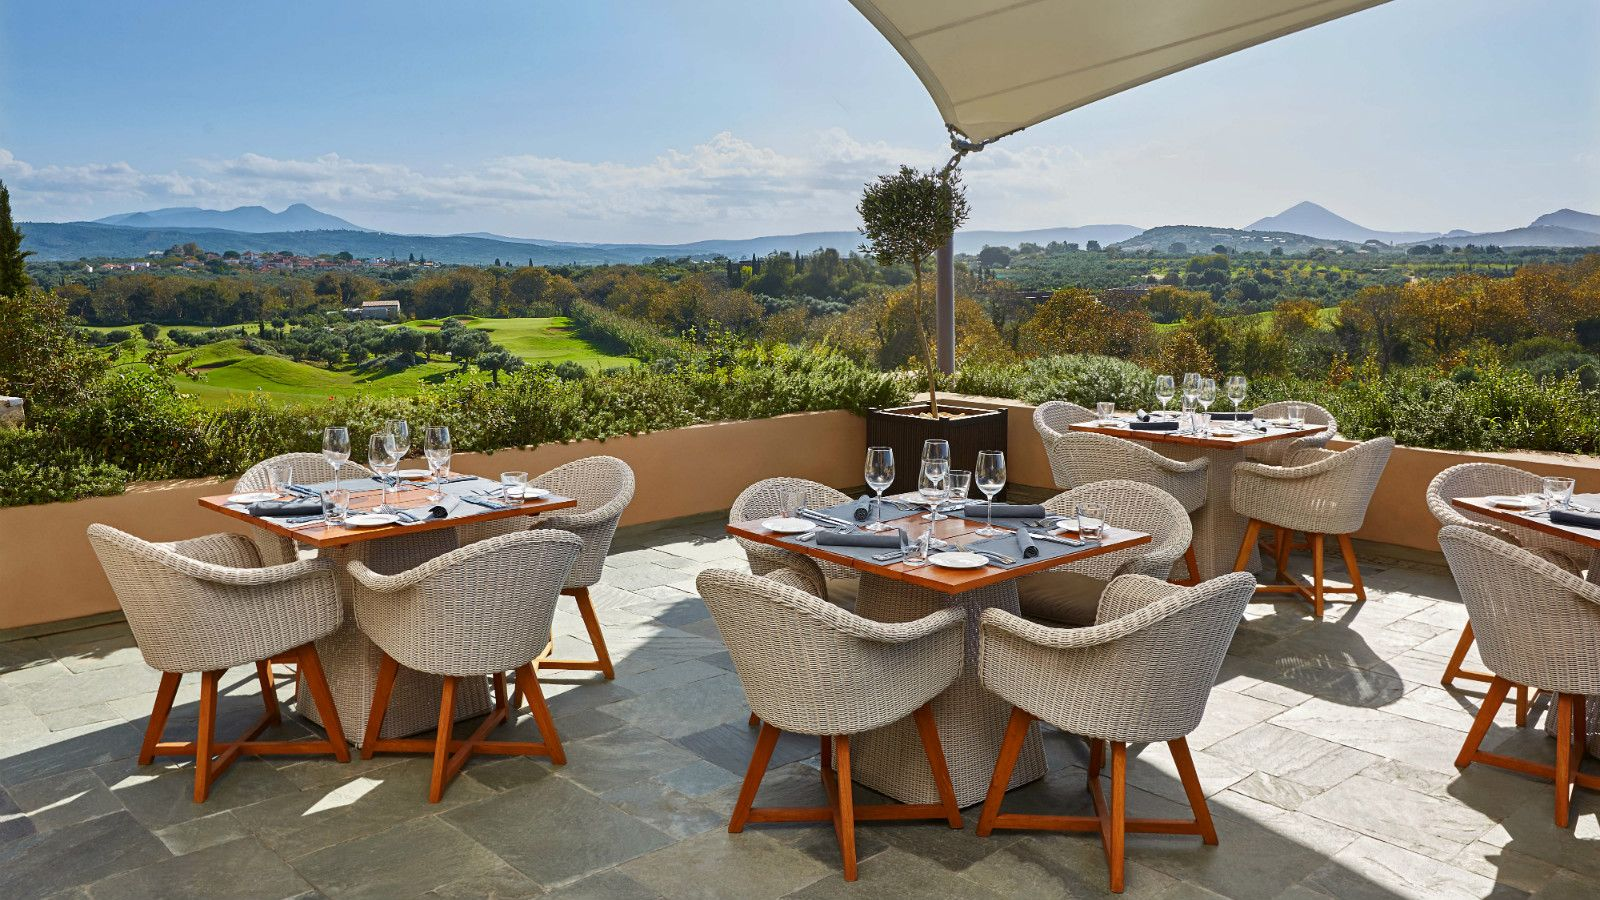 The Westin Resort Costa Navarino Griechenland Restaurants und Bars